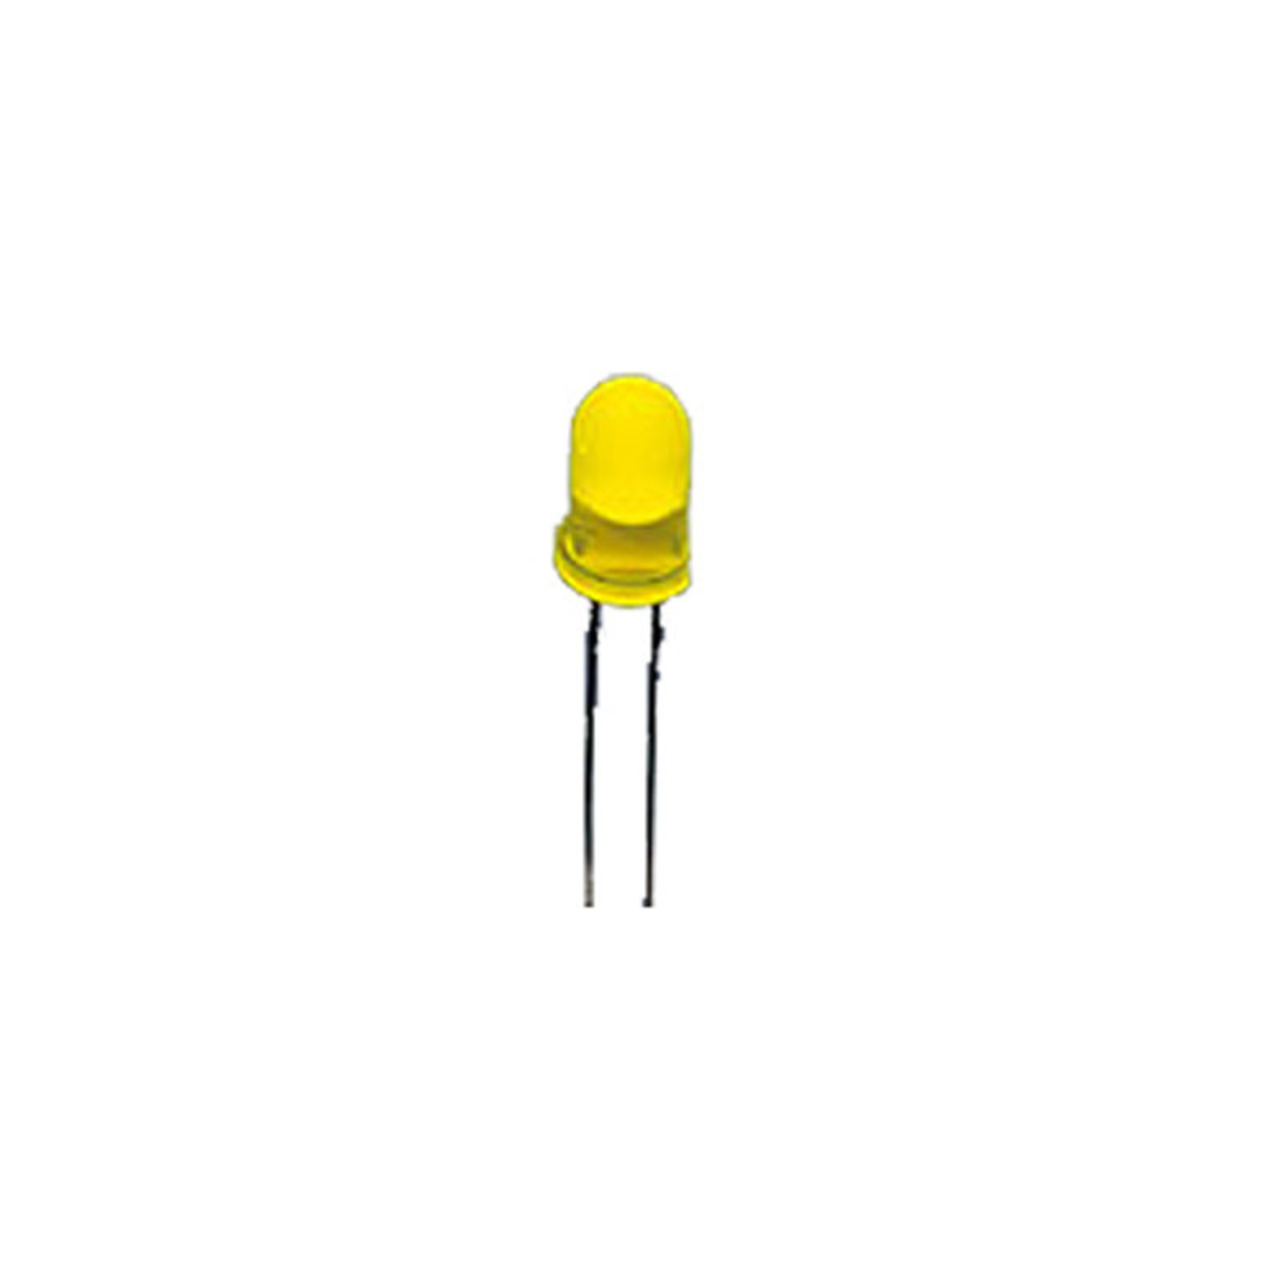 Image of 10x LED 3 mm, Gelb